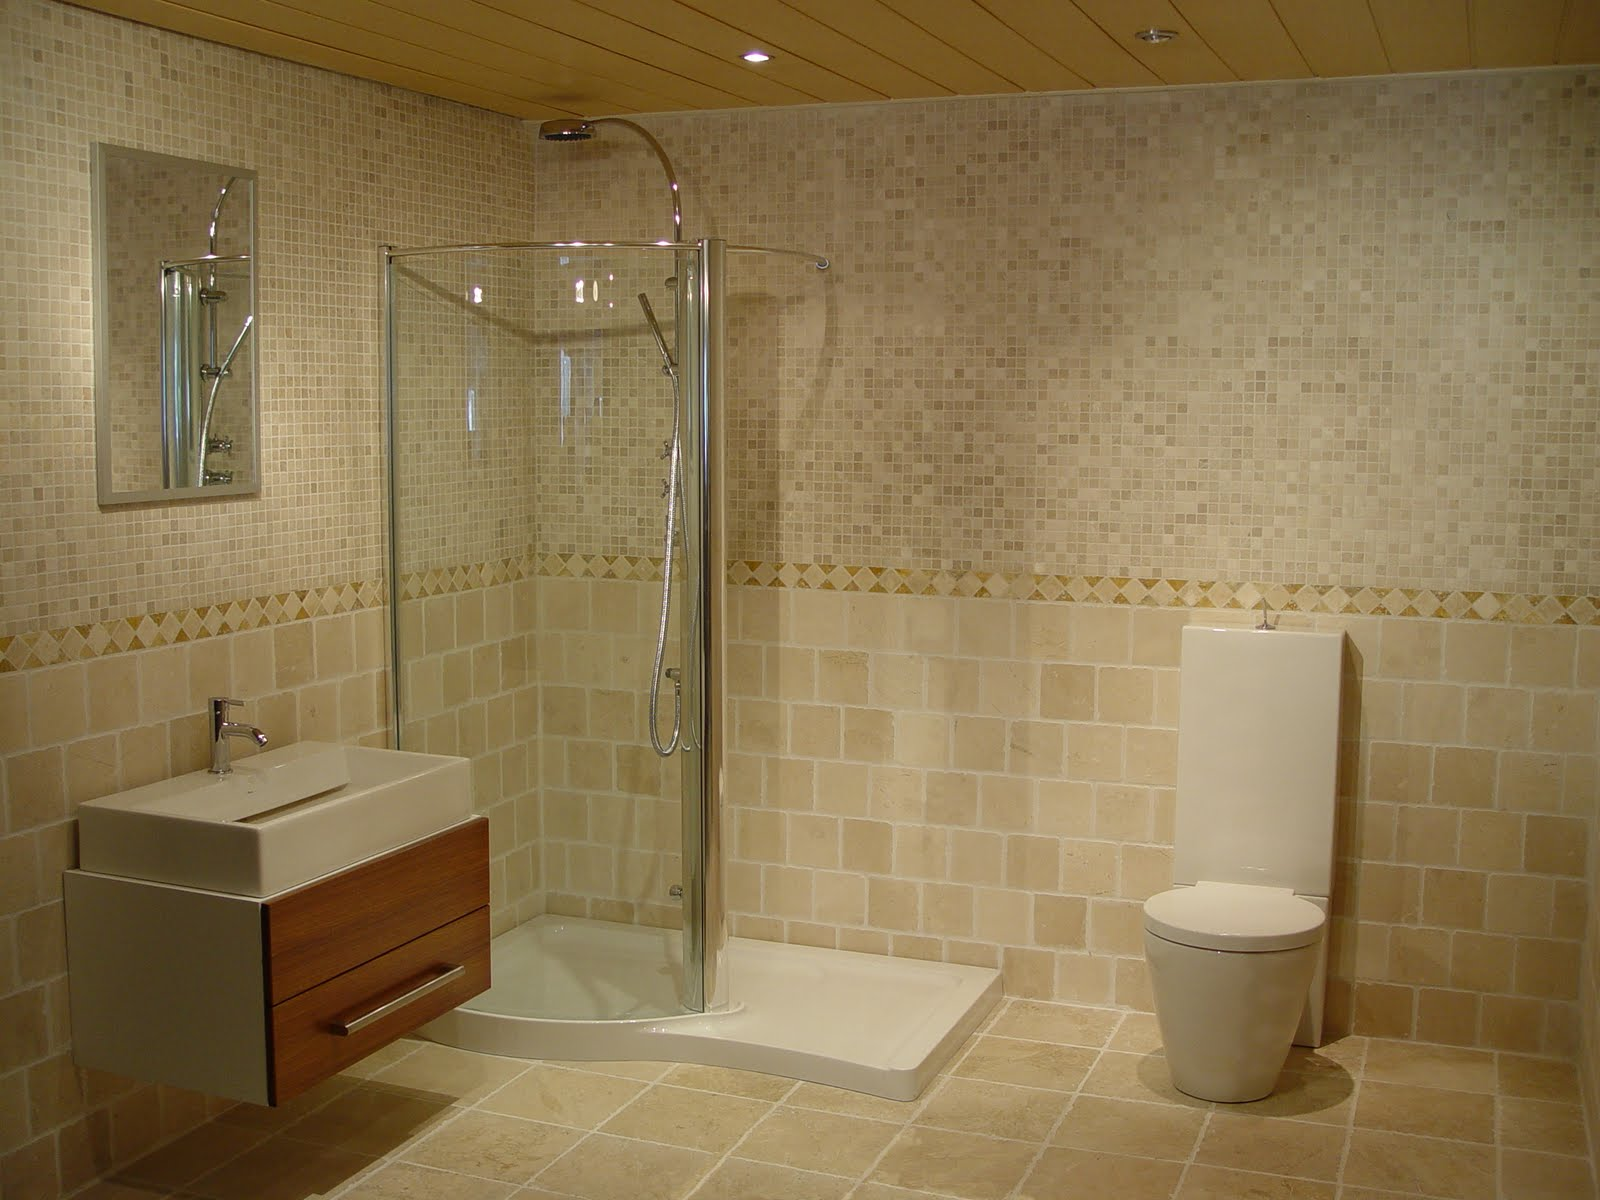 Bathroom designs no tiles